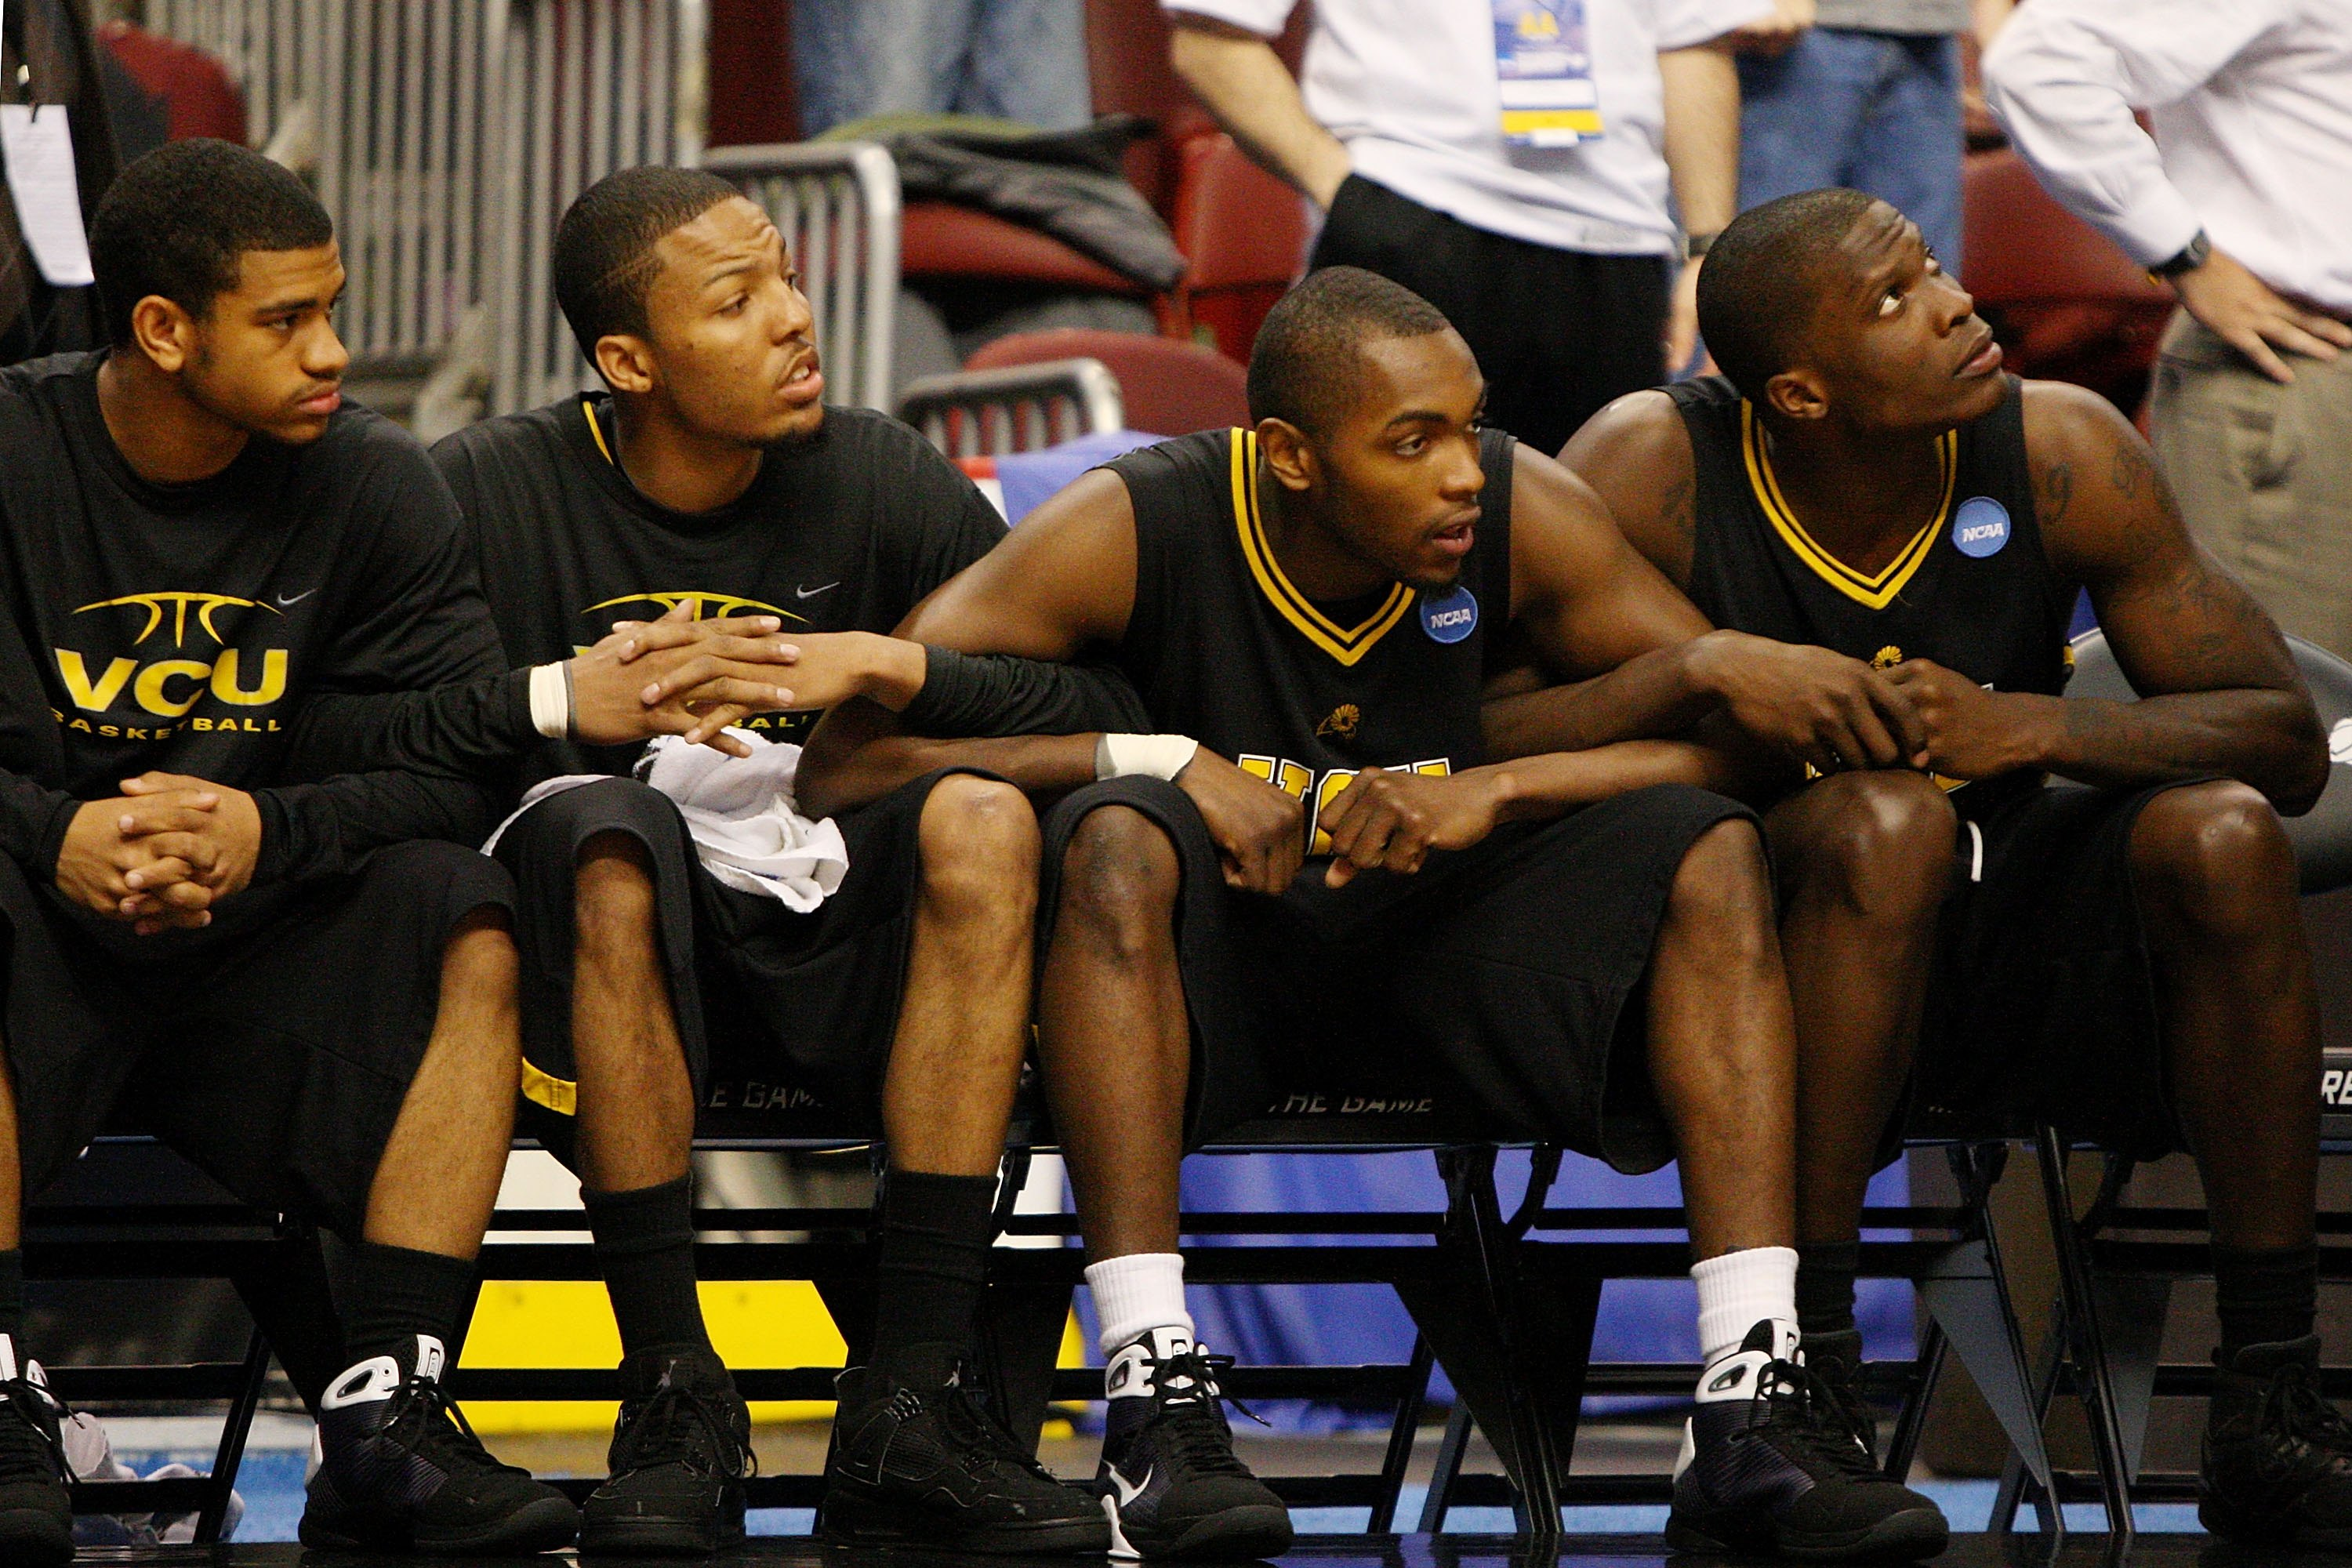 PHILADELPHIA - MARCH 19:  Members of the VCU Rams watch from the bench at the end of the game against the UCLA Bruins during the first round of the NCAA Division I Men's Basketball Tournament at the Wachovia Center on March 19, 2009 in Philadelphia, Penns